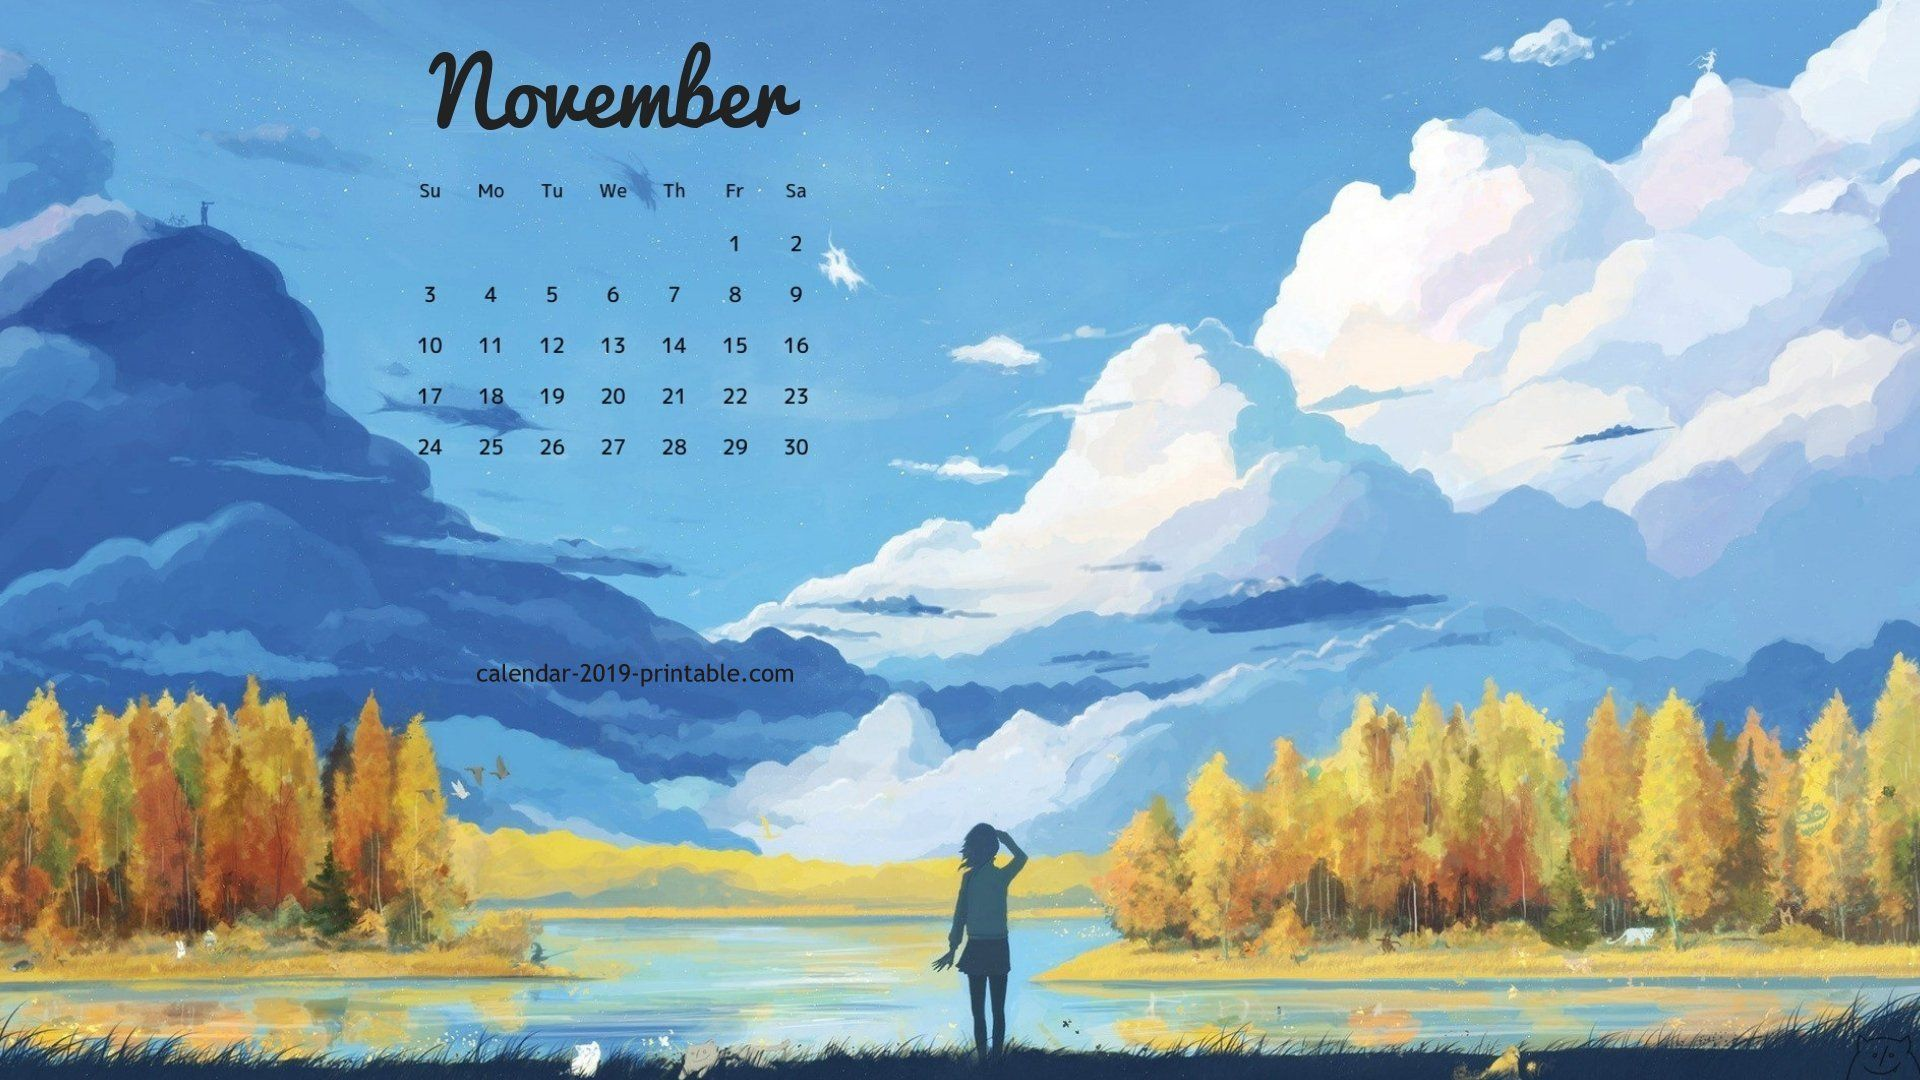 november 2019 pc calendar wallpaper Landscape wallpaper